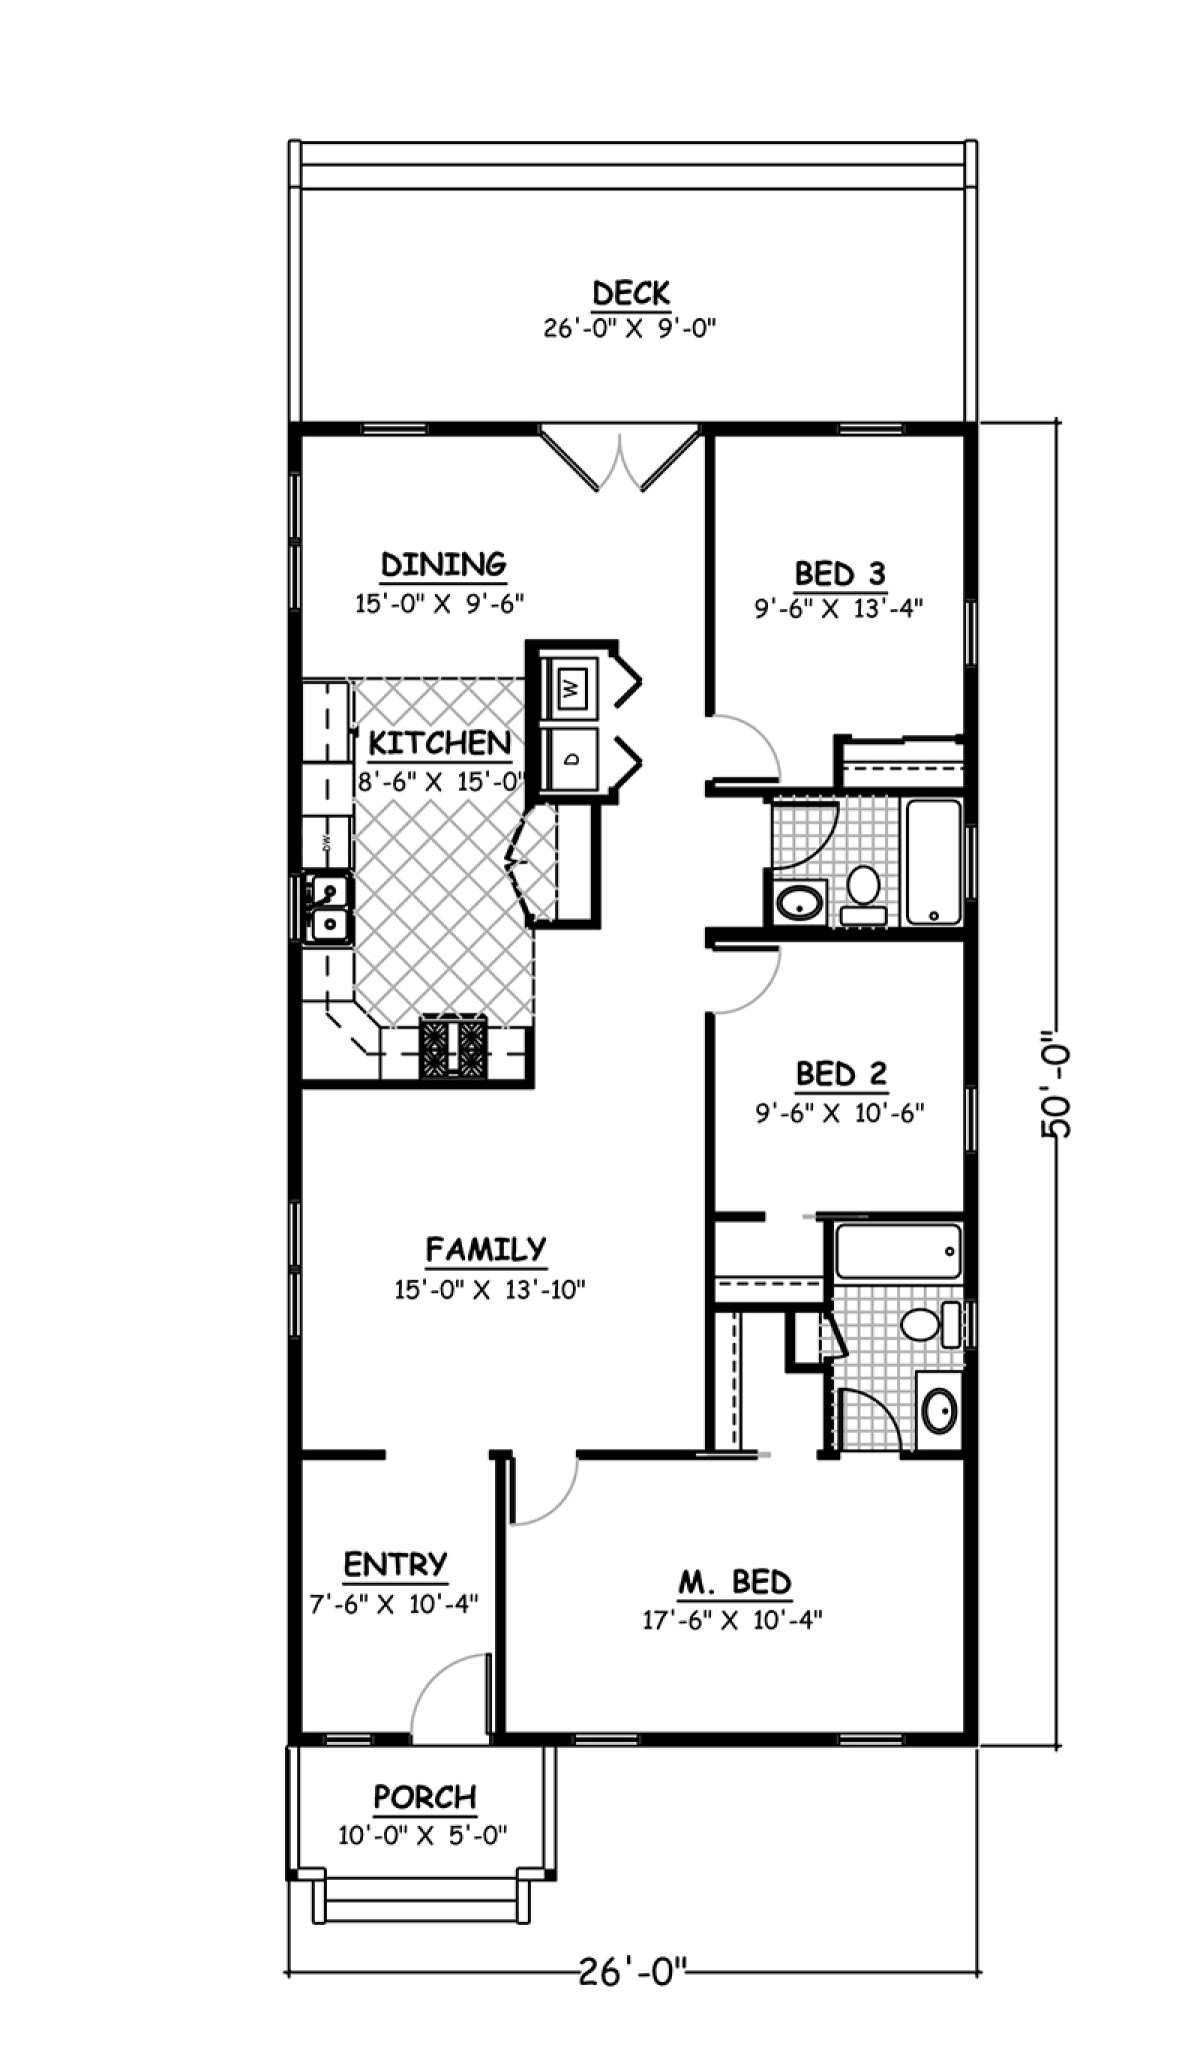 House Plan 526 00041 Narrow Lot Plan 1 300 Square Feet 3 Bedrooms 2 Bathrooms Condo Floor Plans Narrow House Plans Duplex Floor Plans